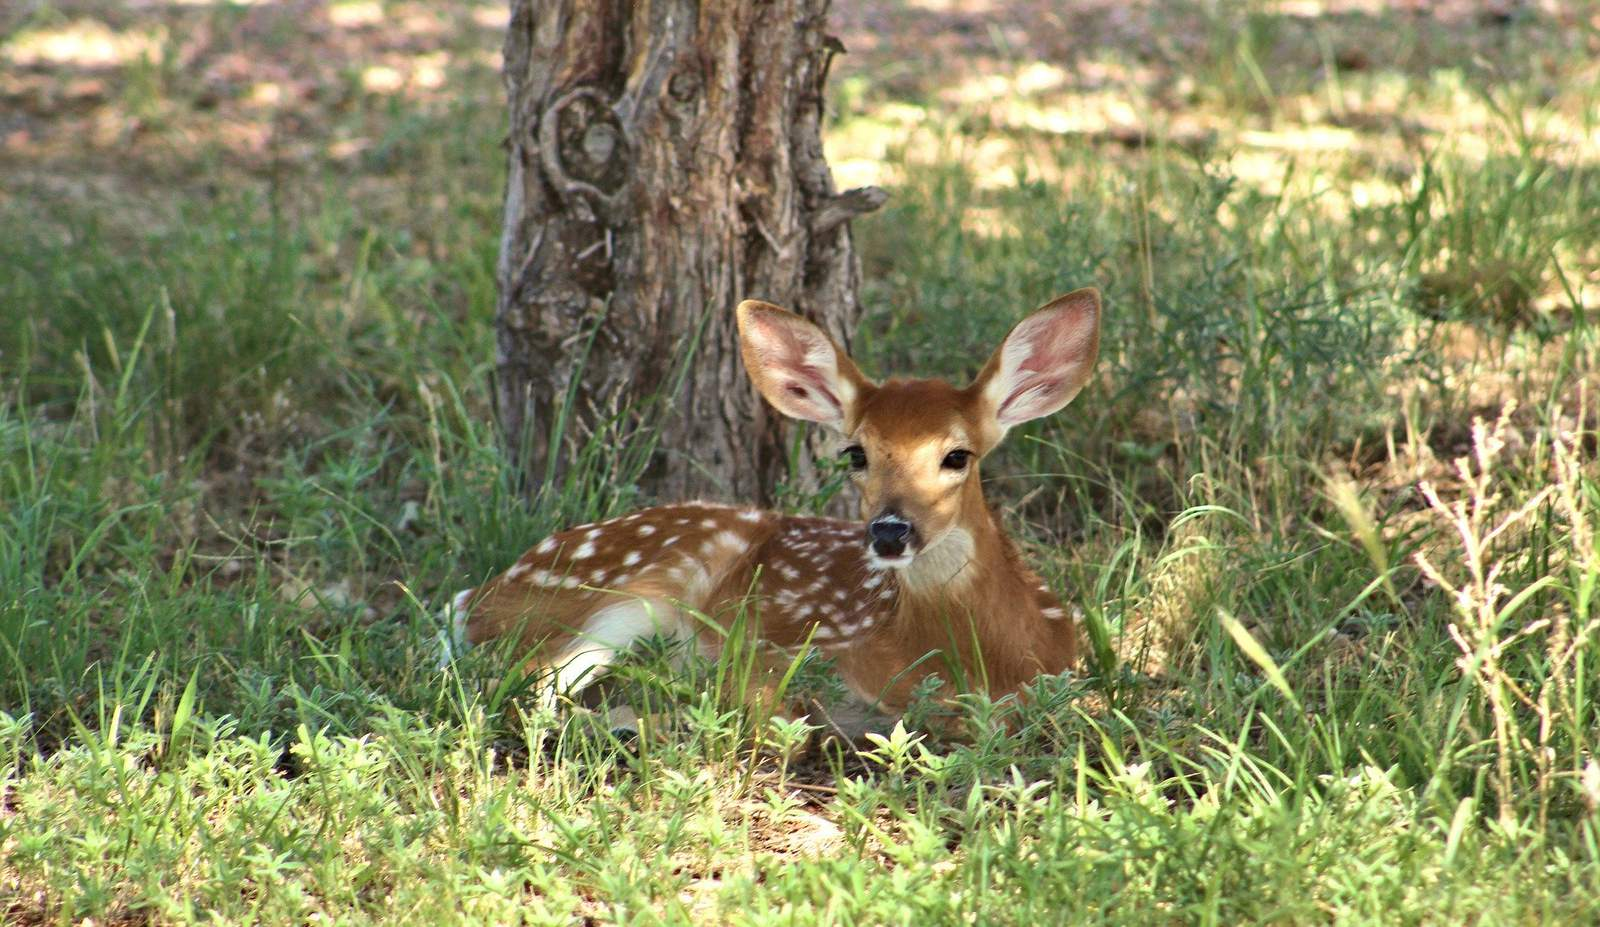 """Do not touch """"orphaned"""" or """"abandoned"""" animals, warns Texas Parks & Wildlife"""